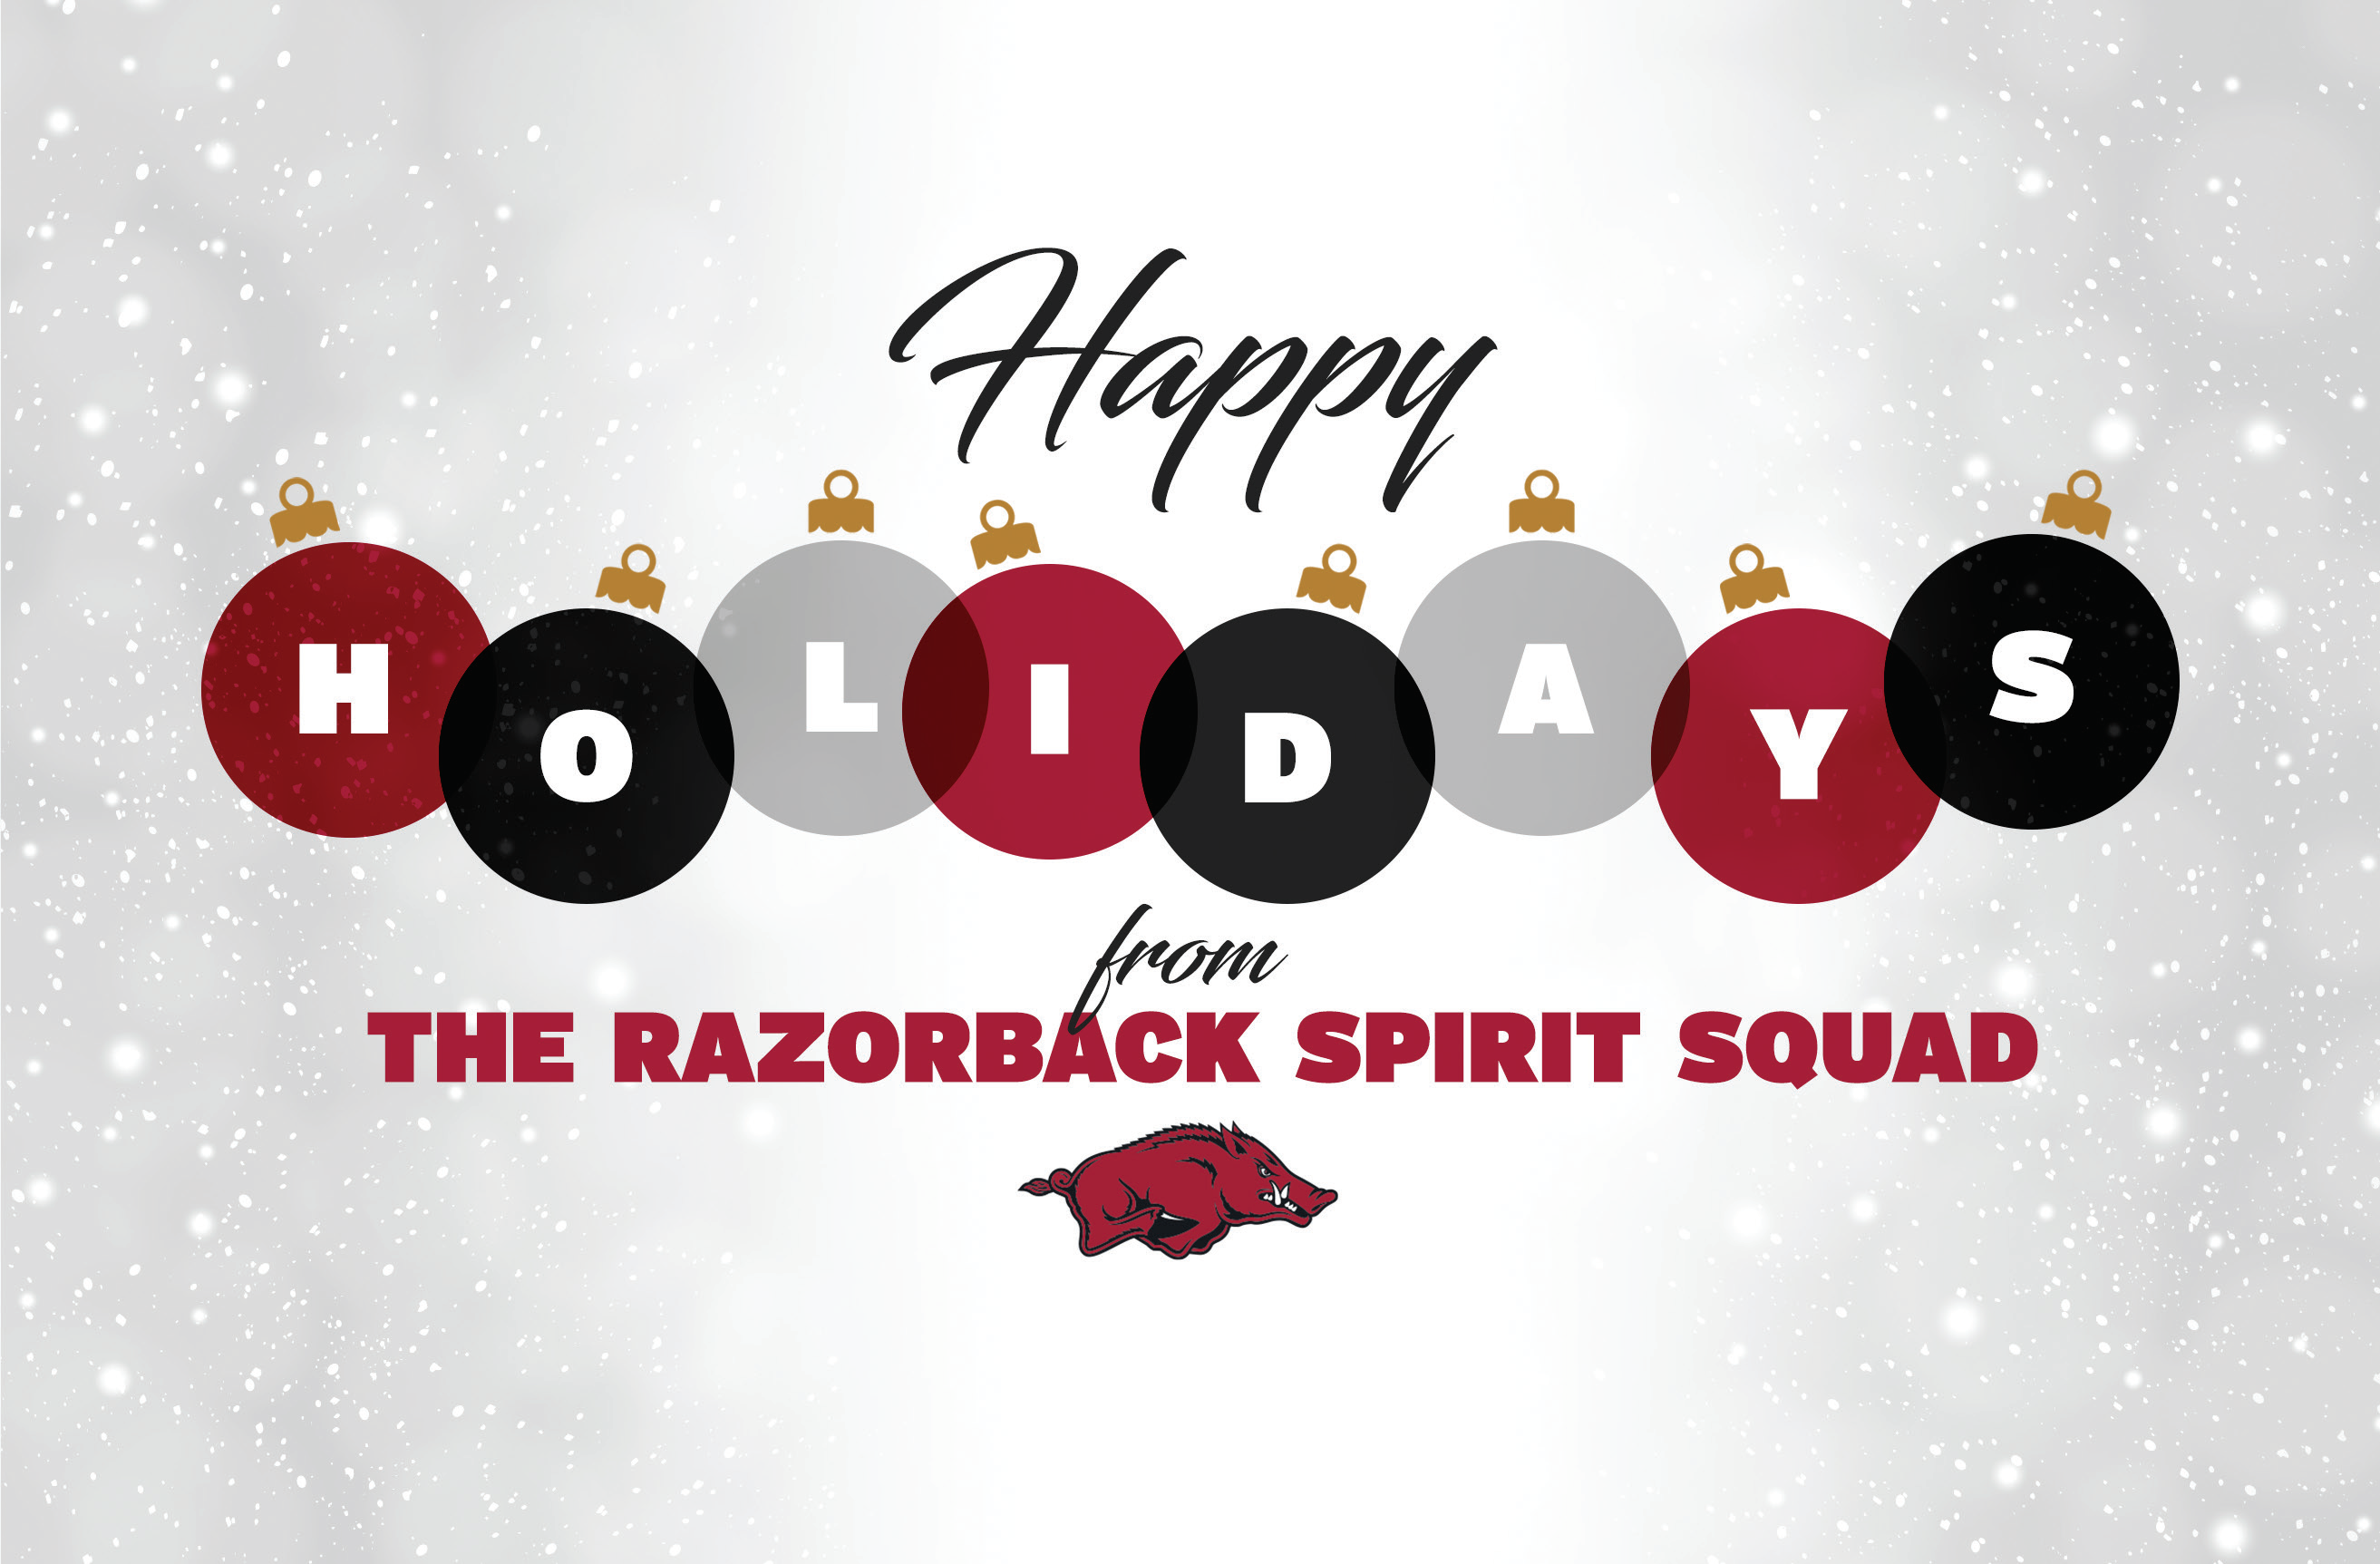 Send A Holiday Card To Razorback Loved Ones